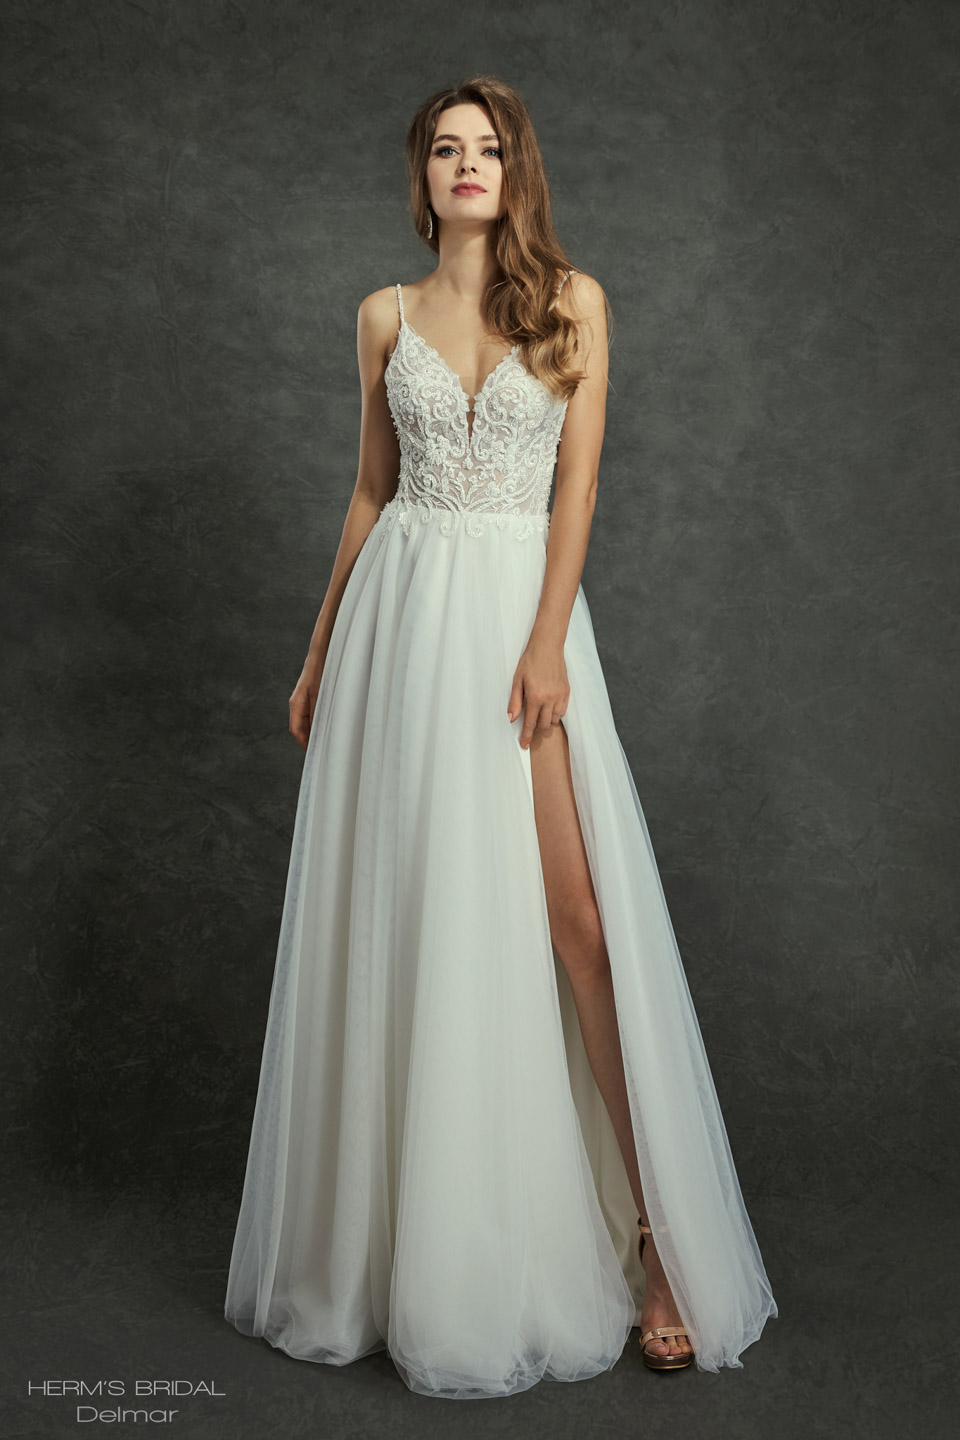 wedding dress Herms Bridal Delmar 1